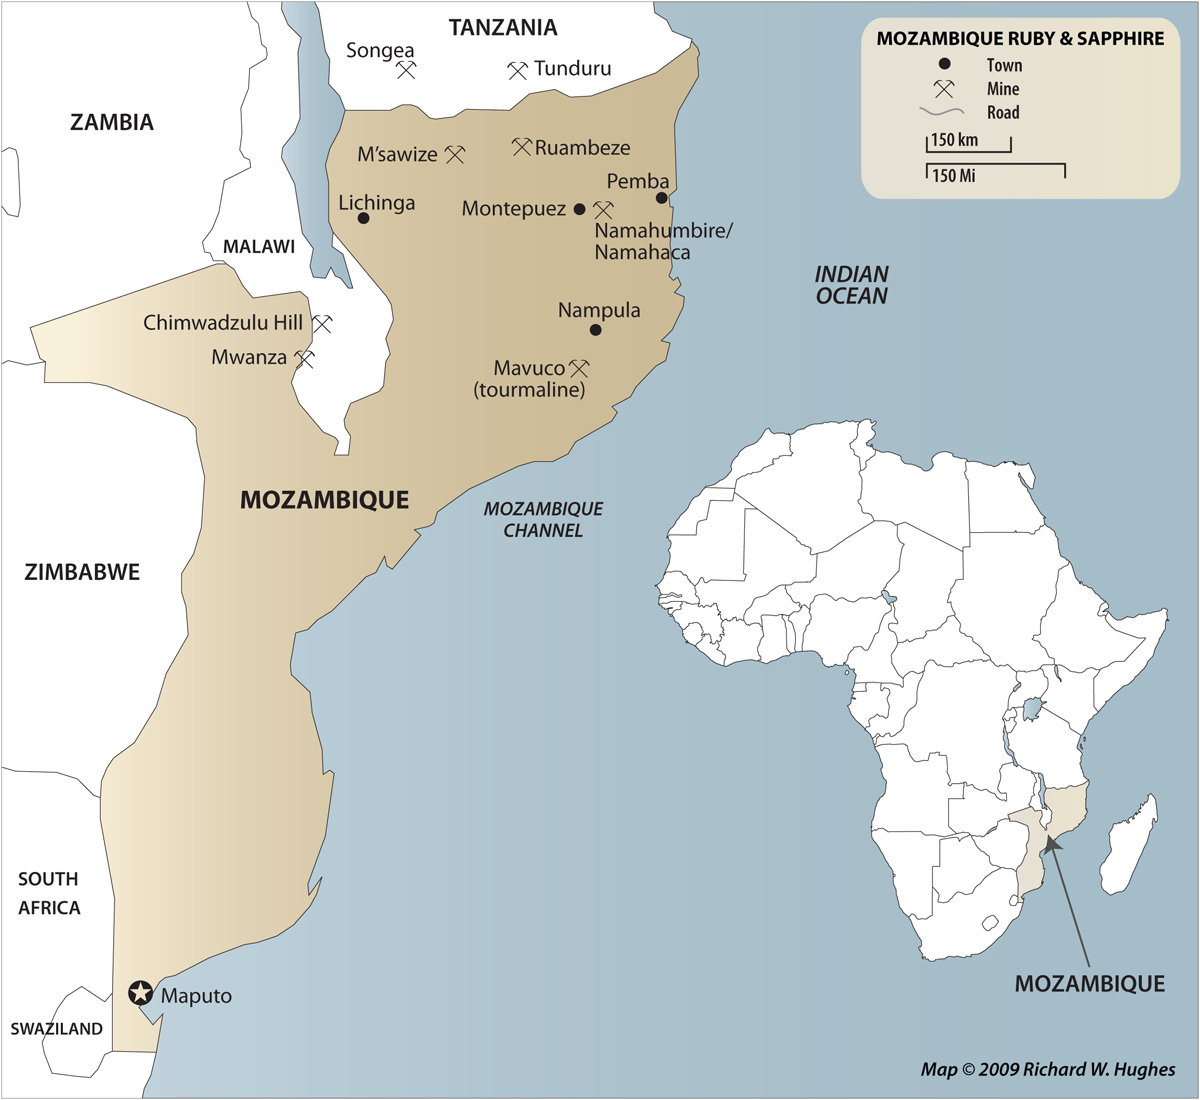 Map of Mozambique, showing the location of the ruby mines near Montepuez.